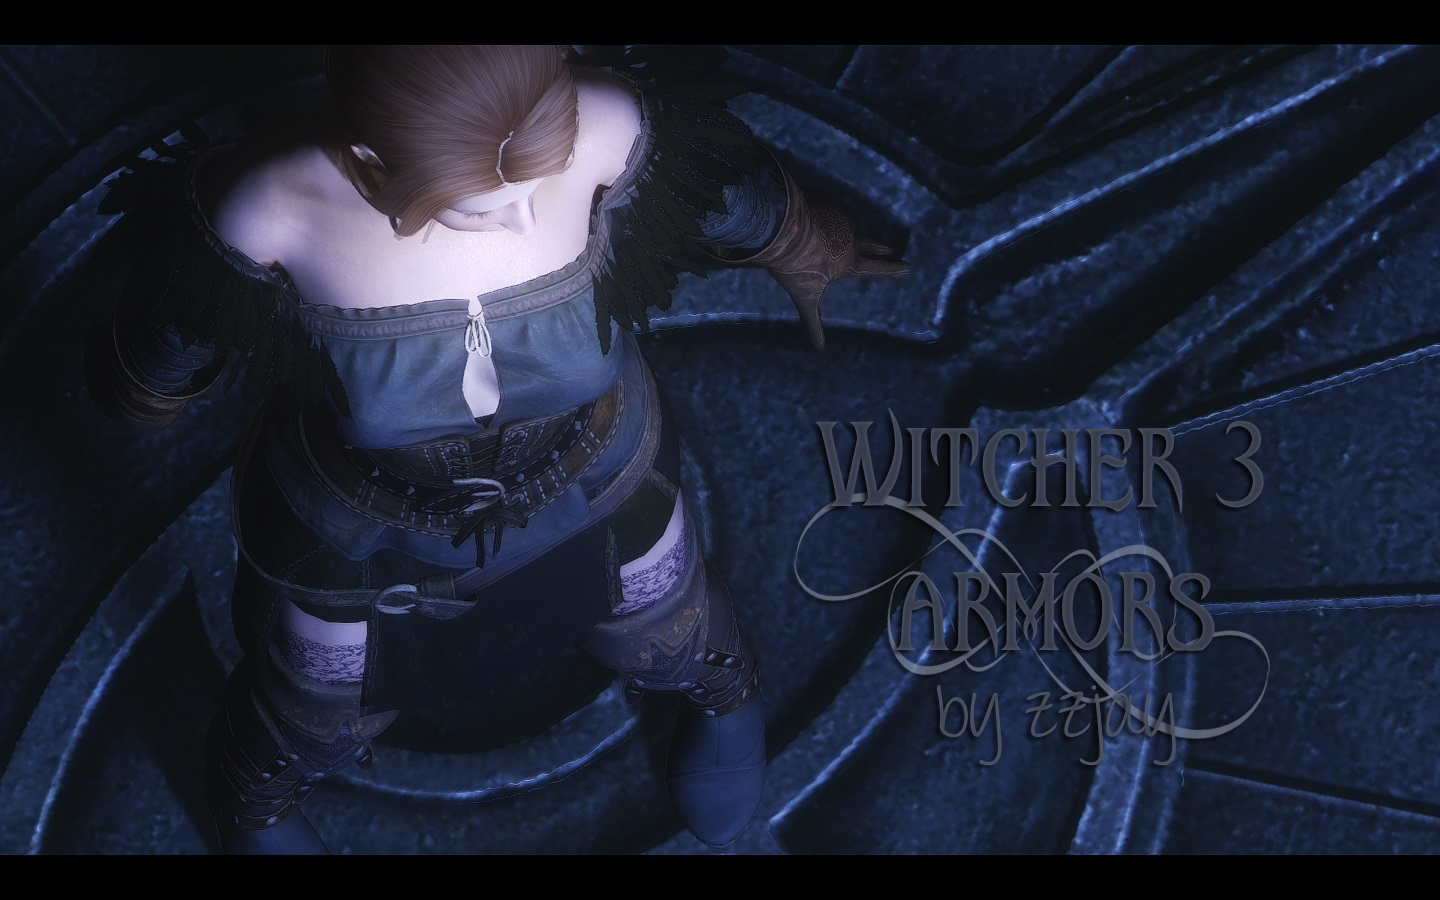 Witcher_3_Yennefer_and_Triss_armors.jpg